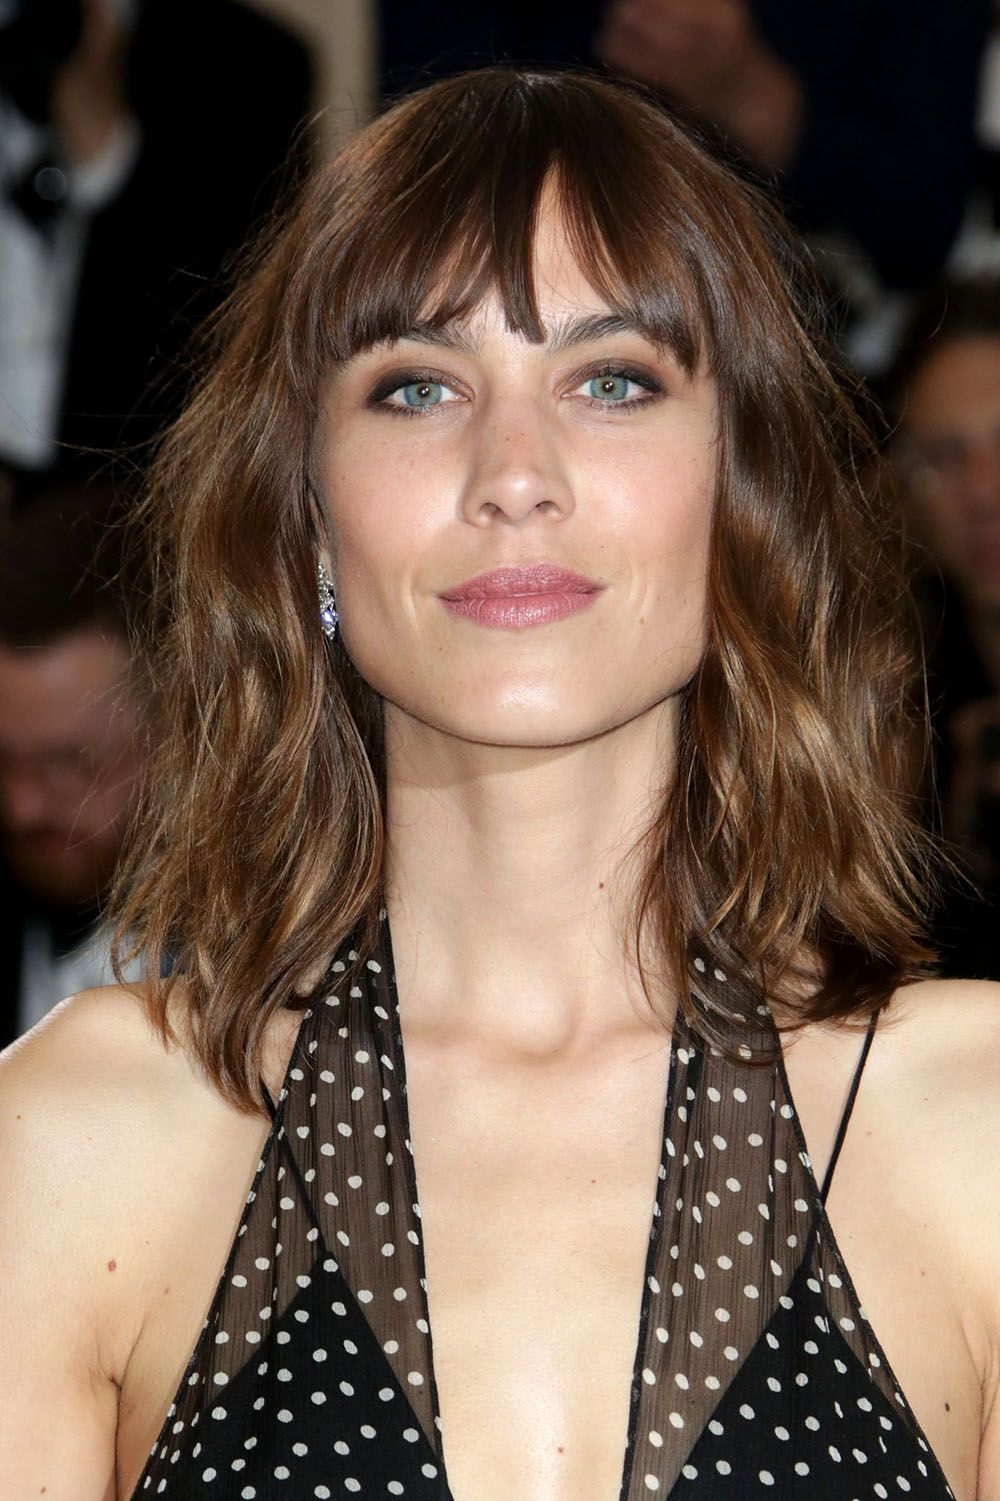 The Hair 100: Top Celebrity Hairstyles | Top celebrities and Hair trends